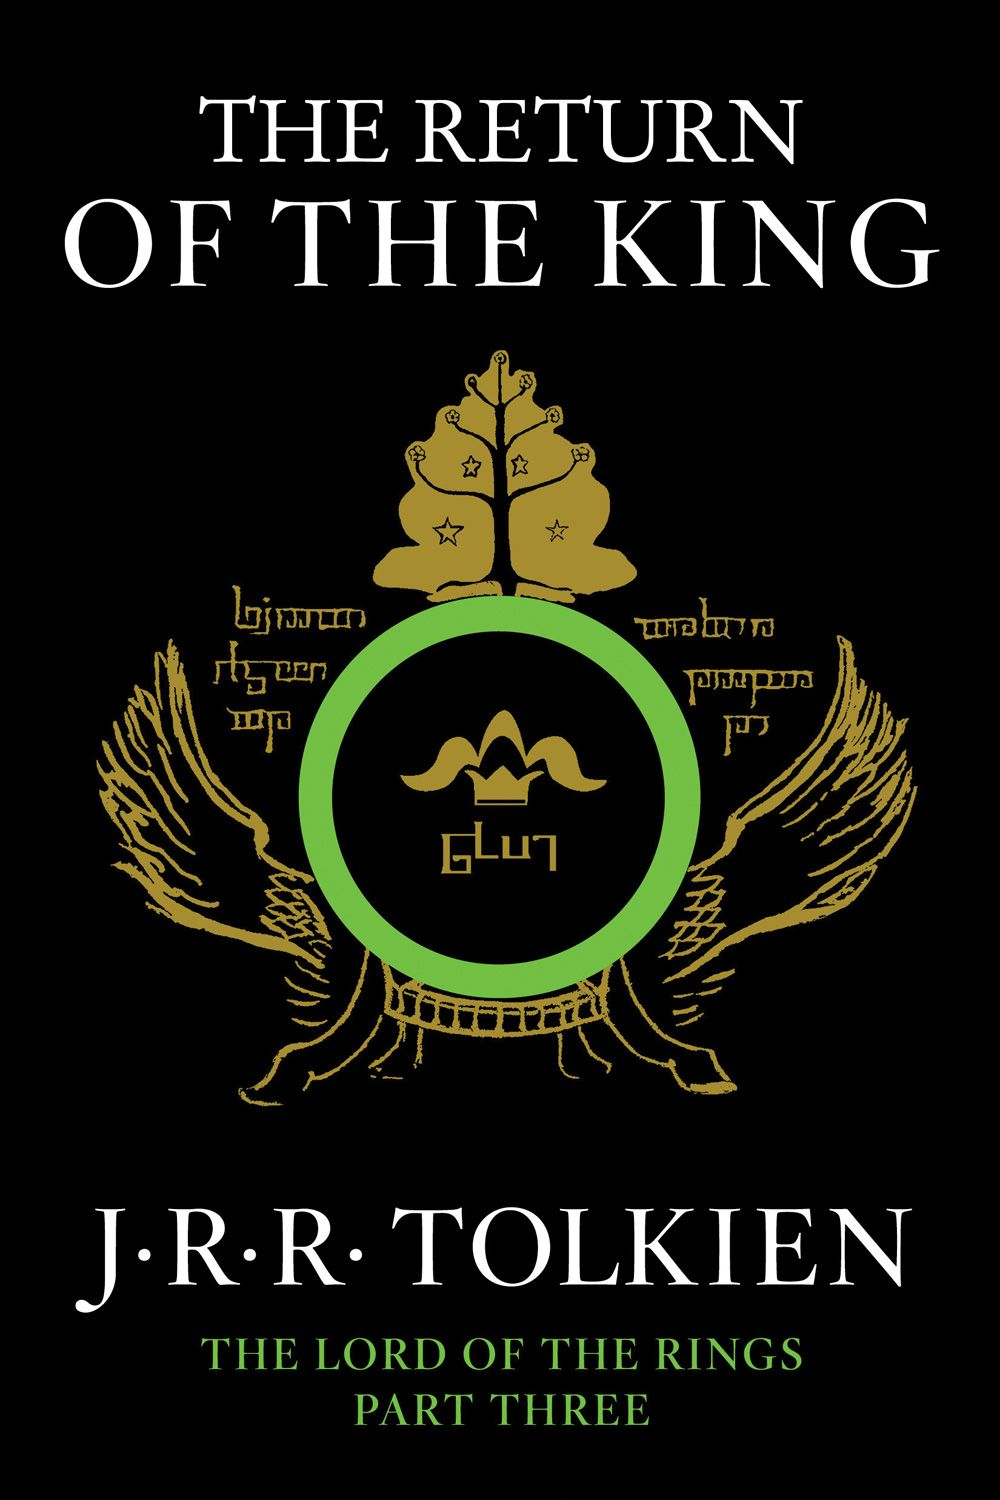 Return of the king books pinterest lord books and tolkien top five pick from the lrc the lord of the rings the return of the king by j tolkien books five and six or part three of three fandeluxe Gallery